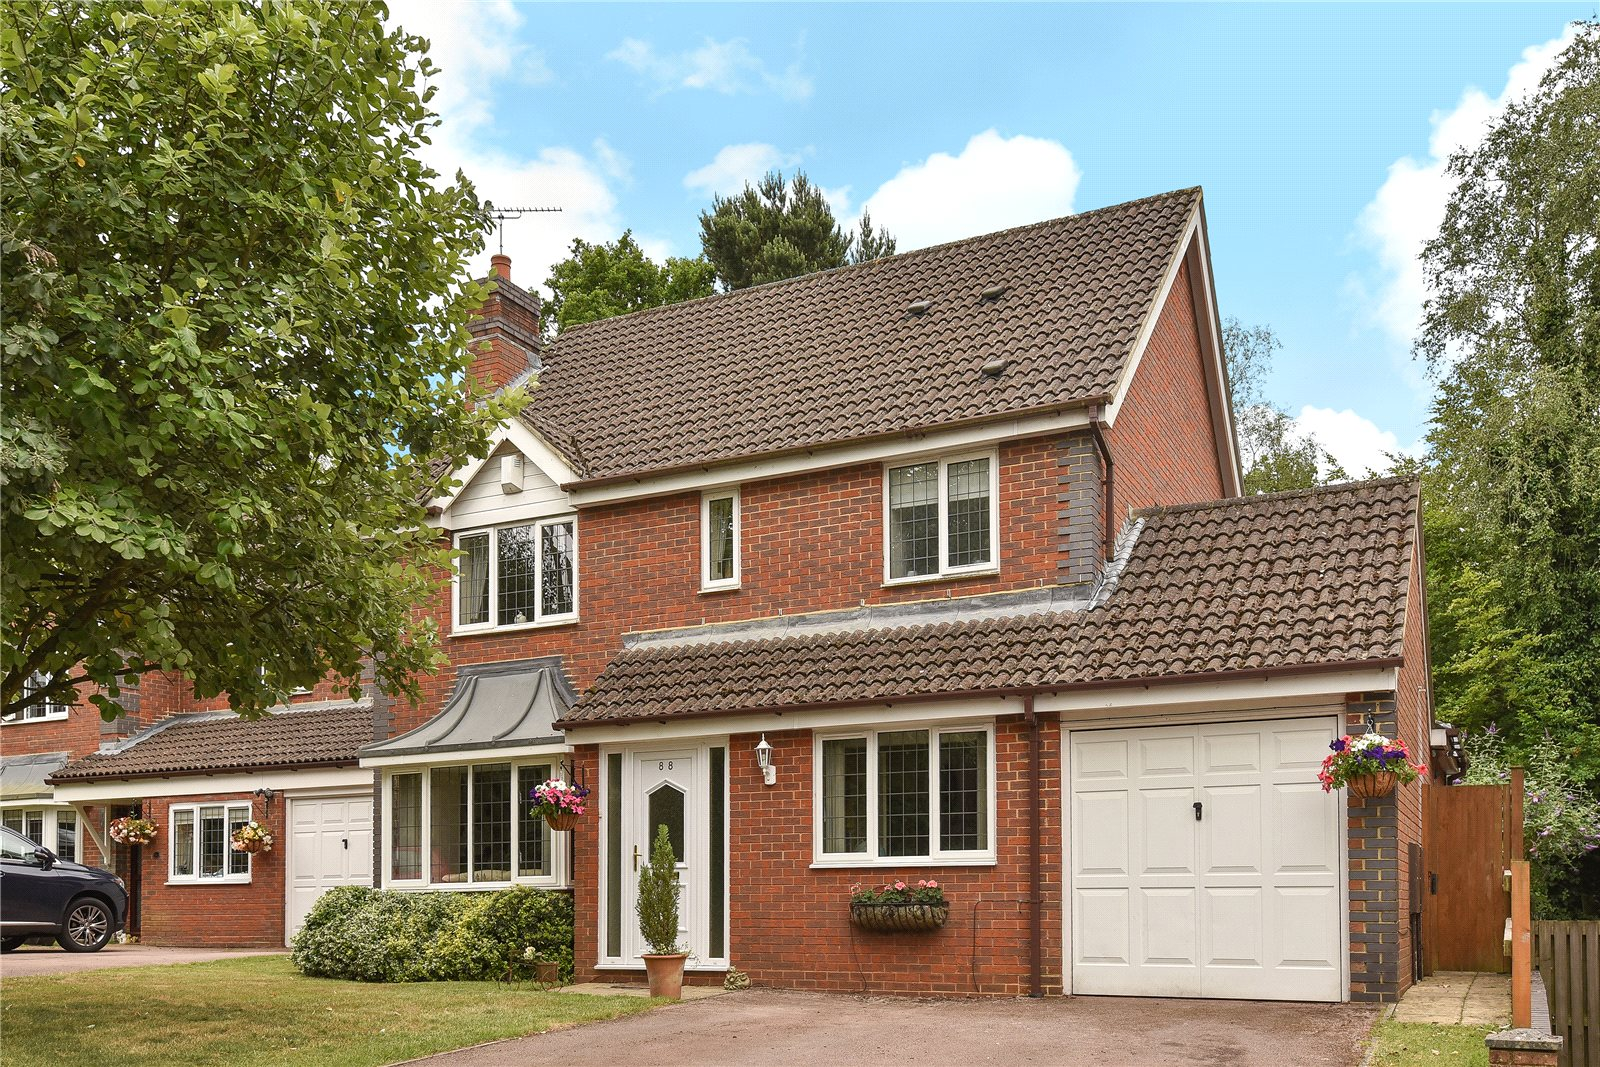 4 Bedrooms Detached House for sale in Lupin Ride, Crowthorne, Berkshire, RG45